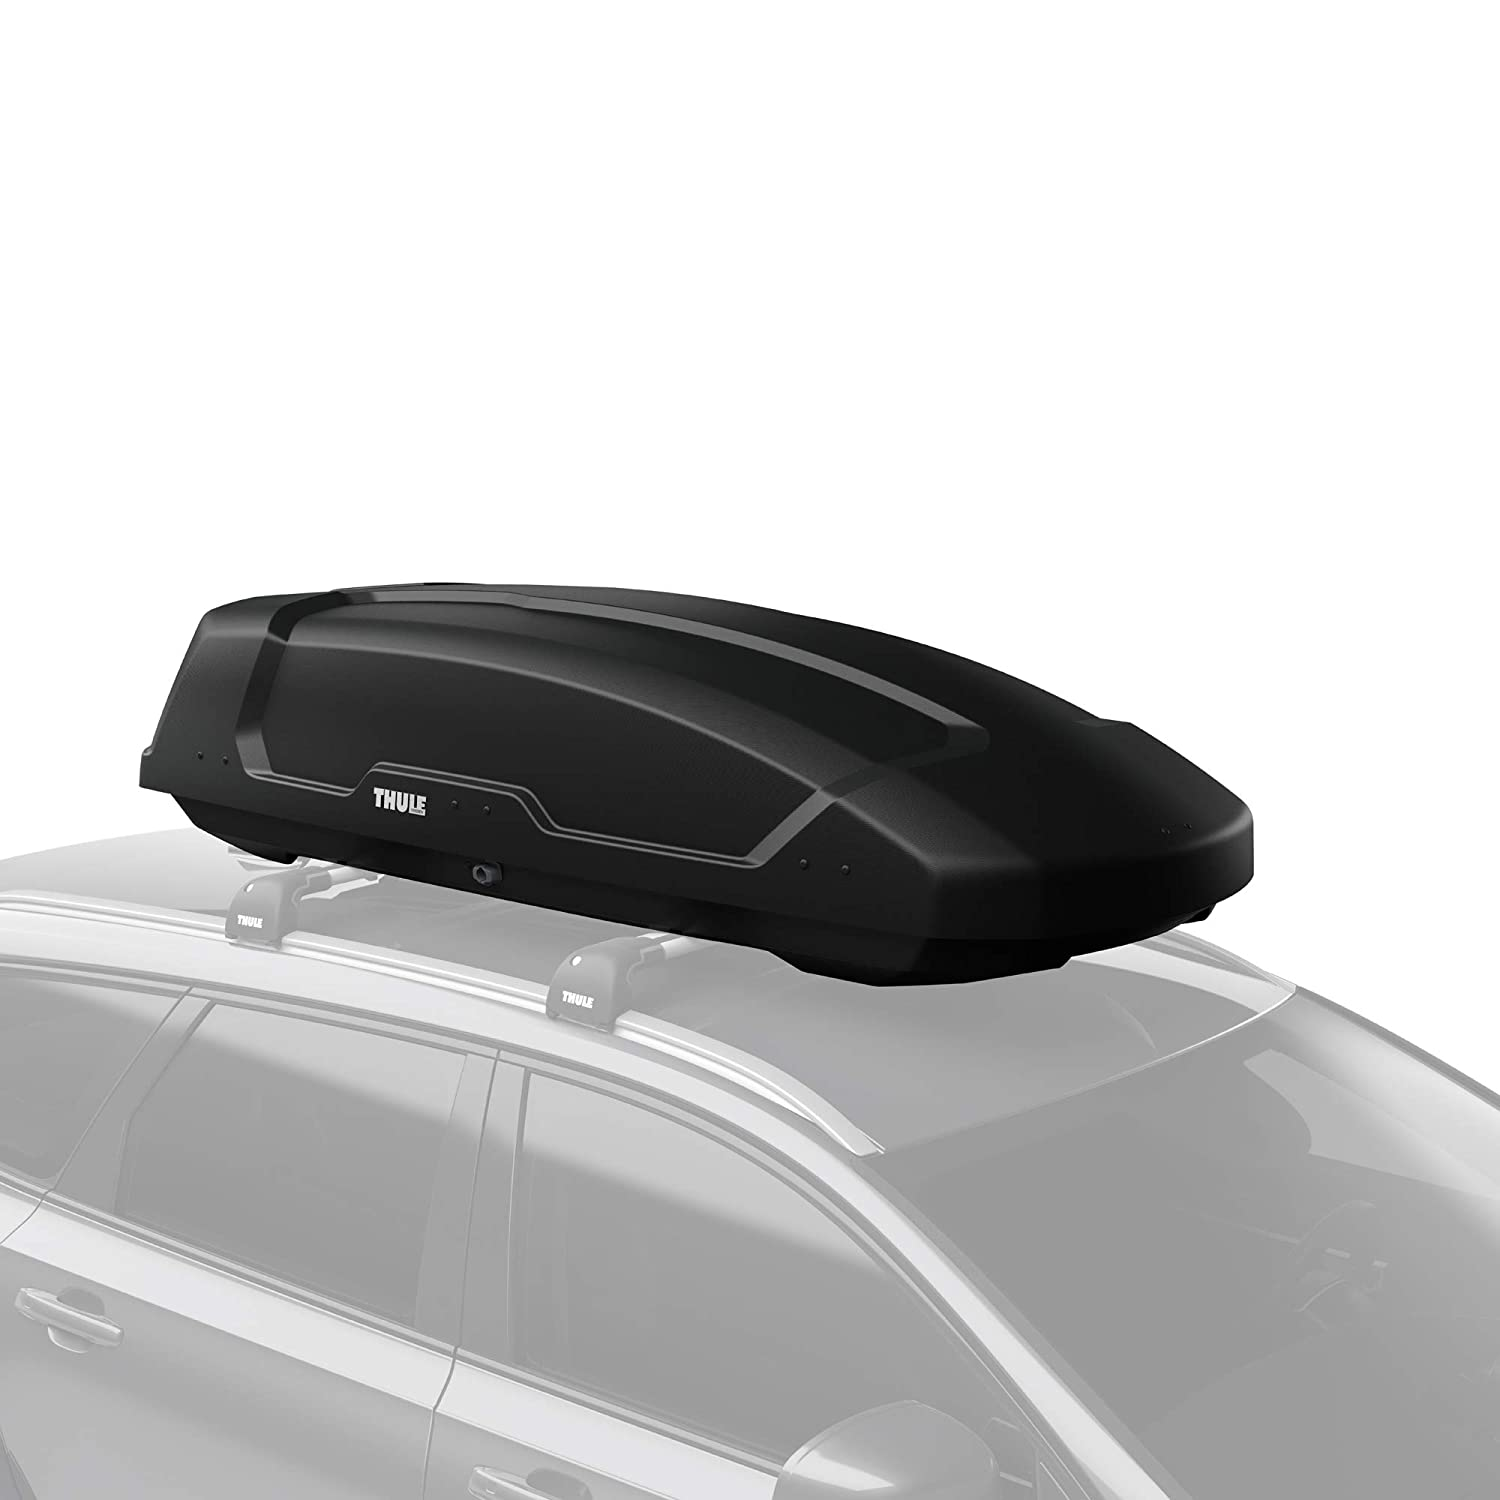 Thule Force Xt Rooftop Cargo Box Large Black Industrial Scientific